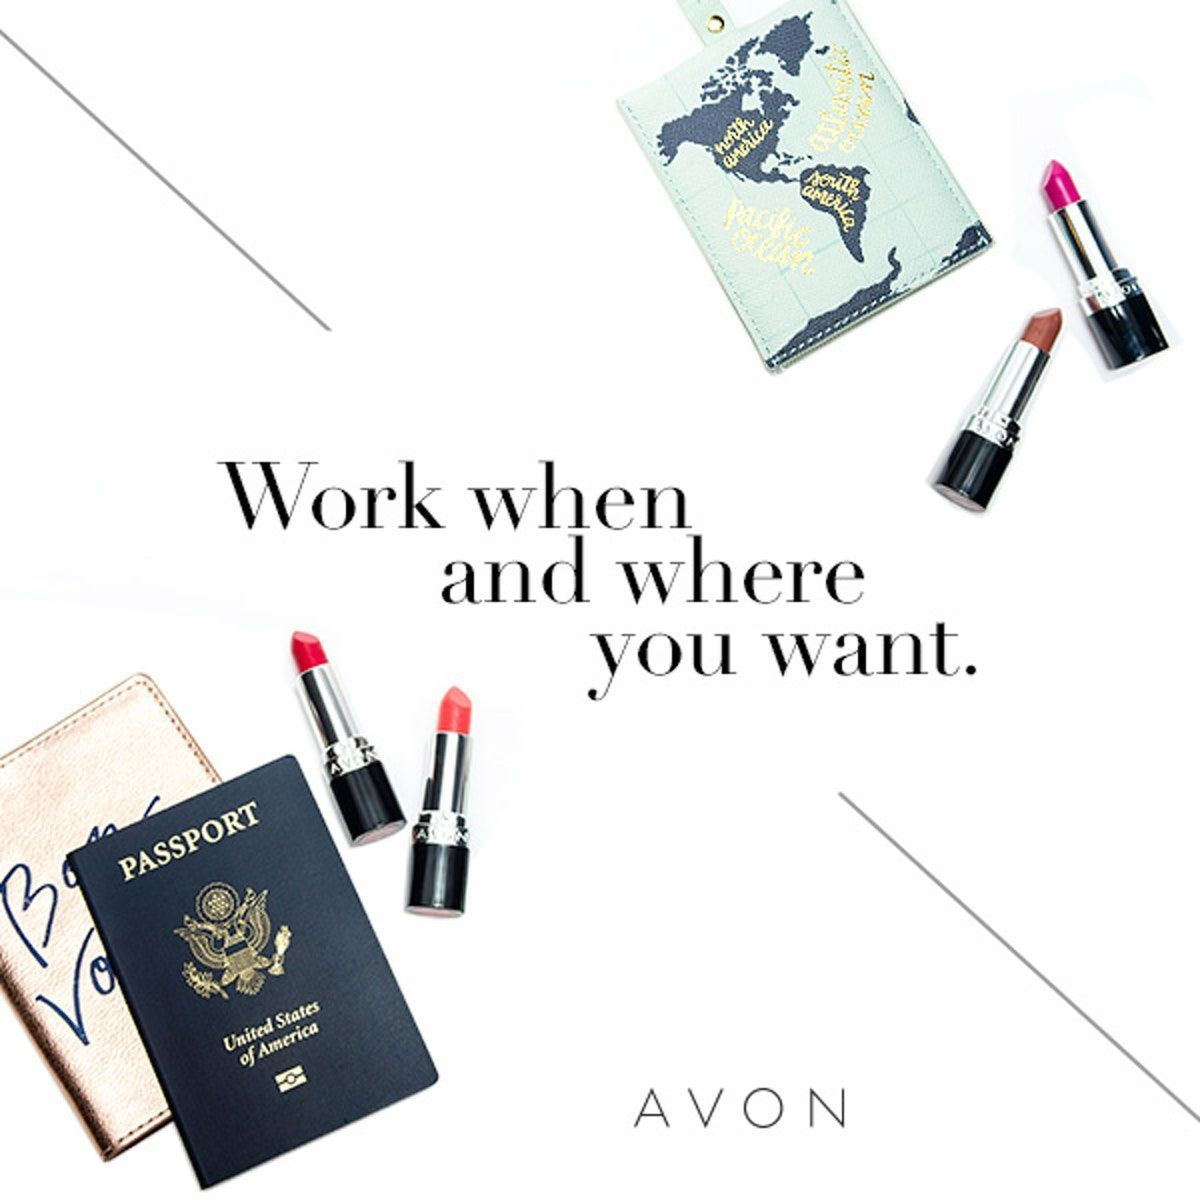 Avon has all of the tools you need to work from wherever